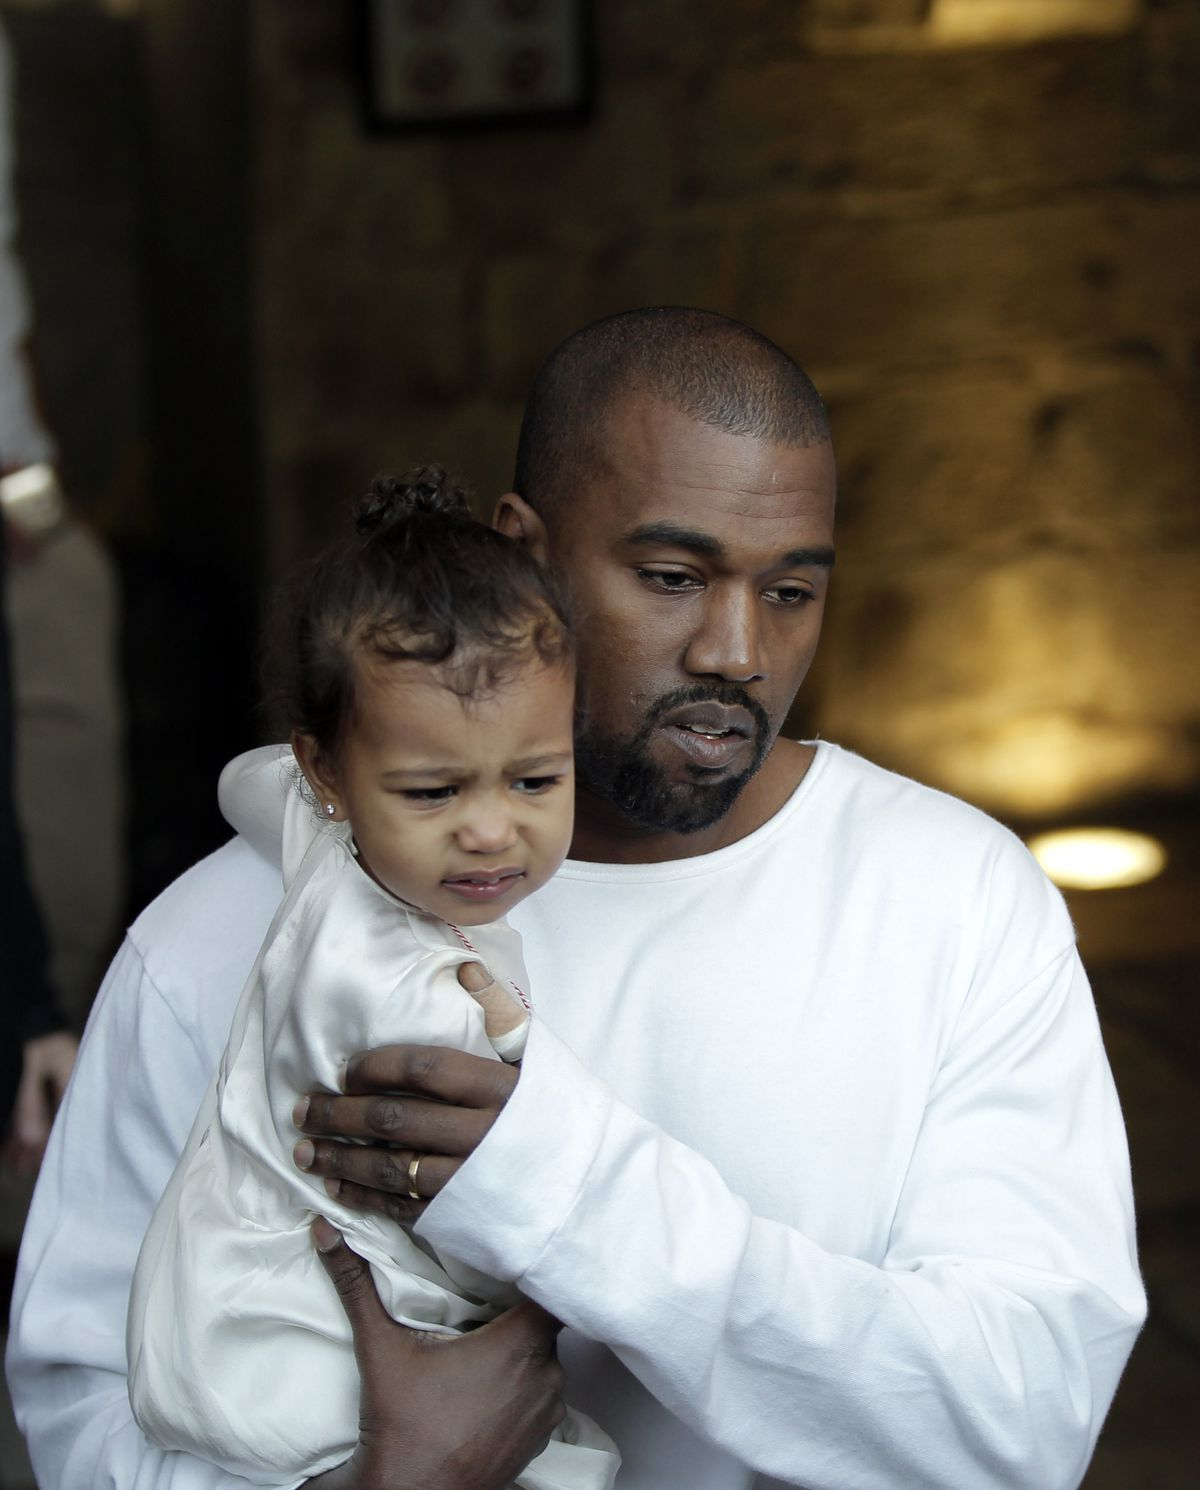 During a discussion on abortion this past weekend in a South Carolina campaign rally, Kanye West veered into his private life with his wife, explaining that they considered terminating her first pregnancy. He emotionally said that Kardashian ended up fighting to keep the unborn child, andgave birth to daughter North(pictured with Kanye) in 2013.